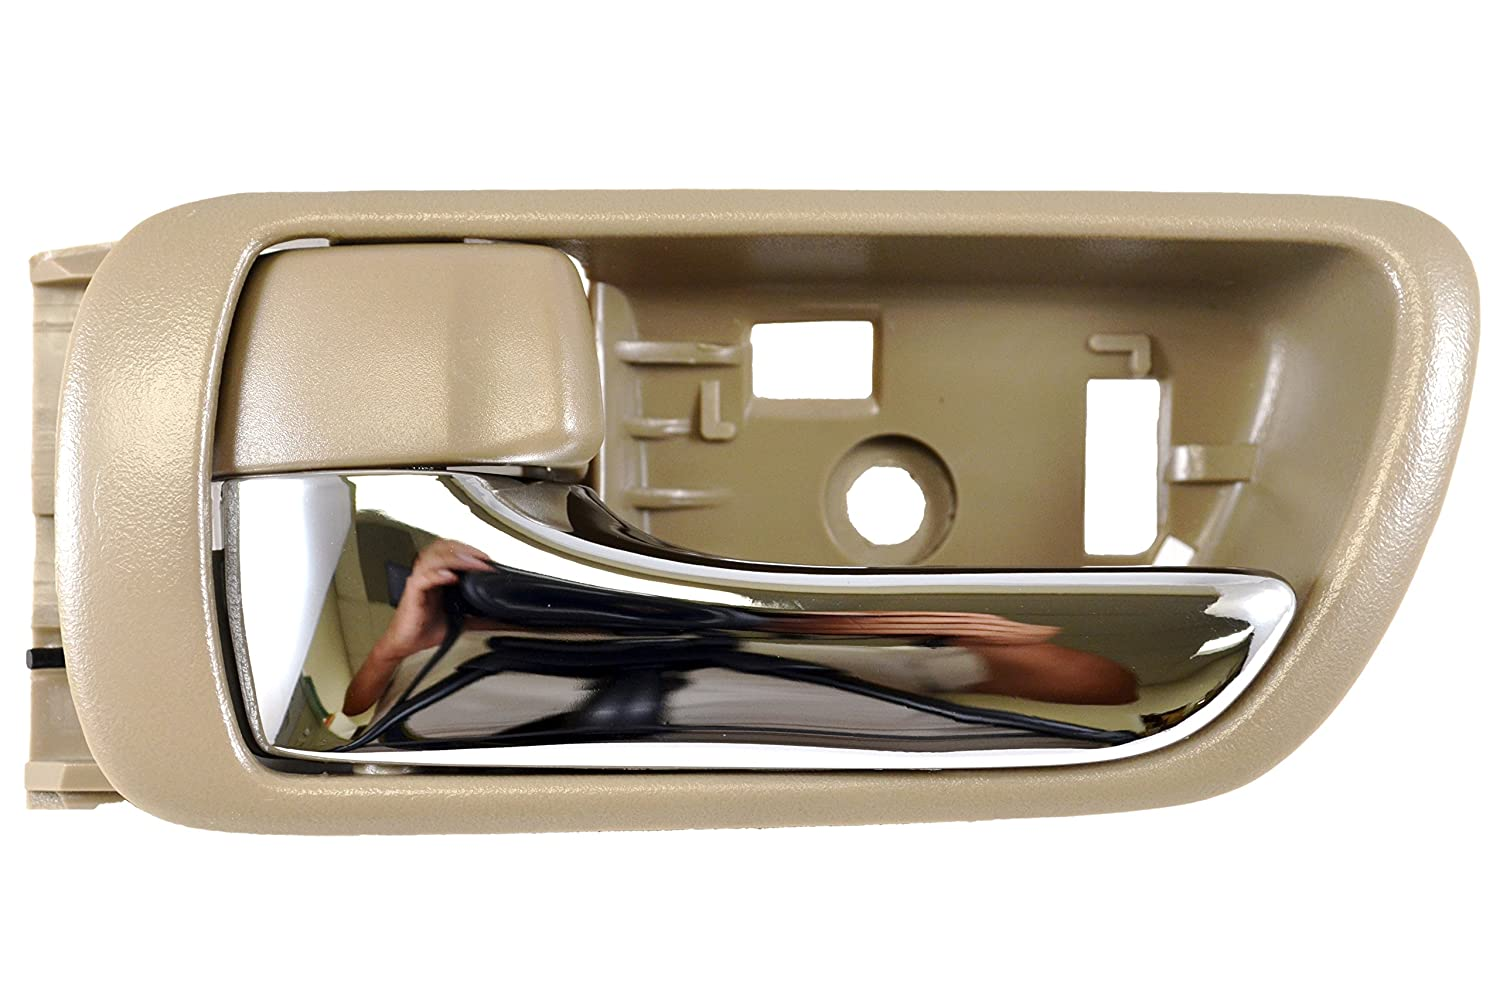 Beige//Tan Housing with Chrome Lever Driver Side Inside Interior Inner Door Handle PT Auto Warehouse TO-2469ME-LH